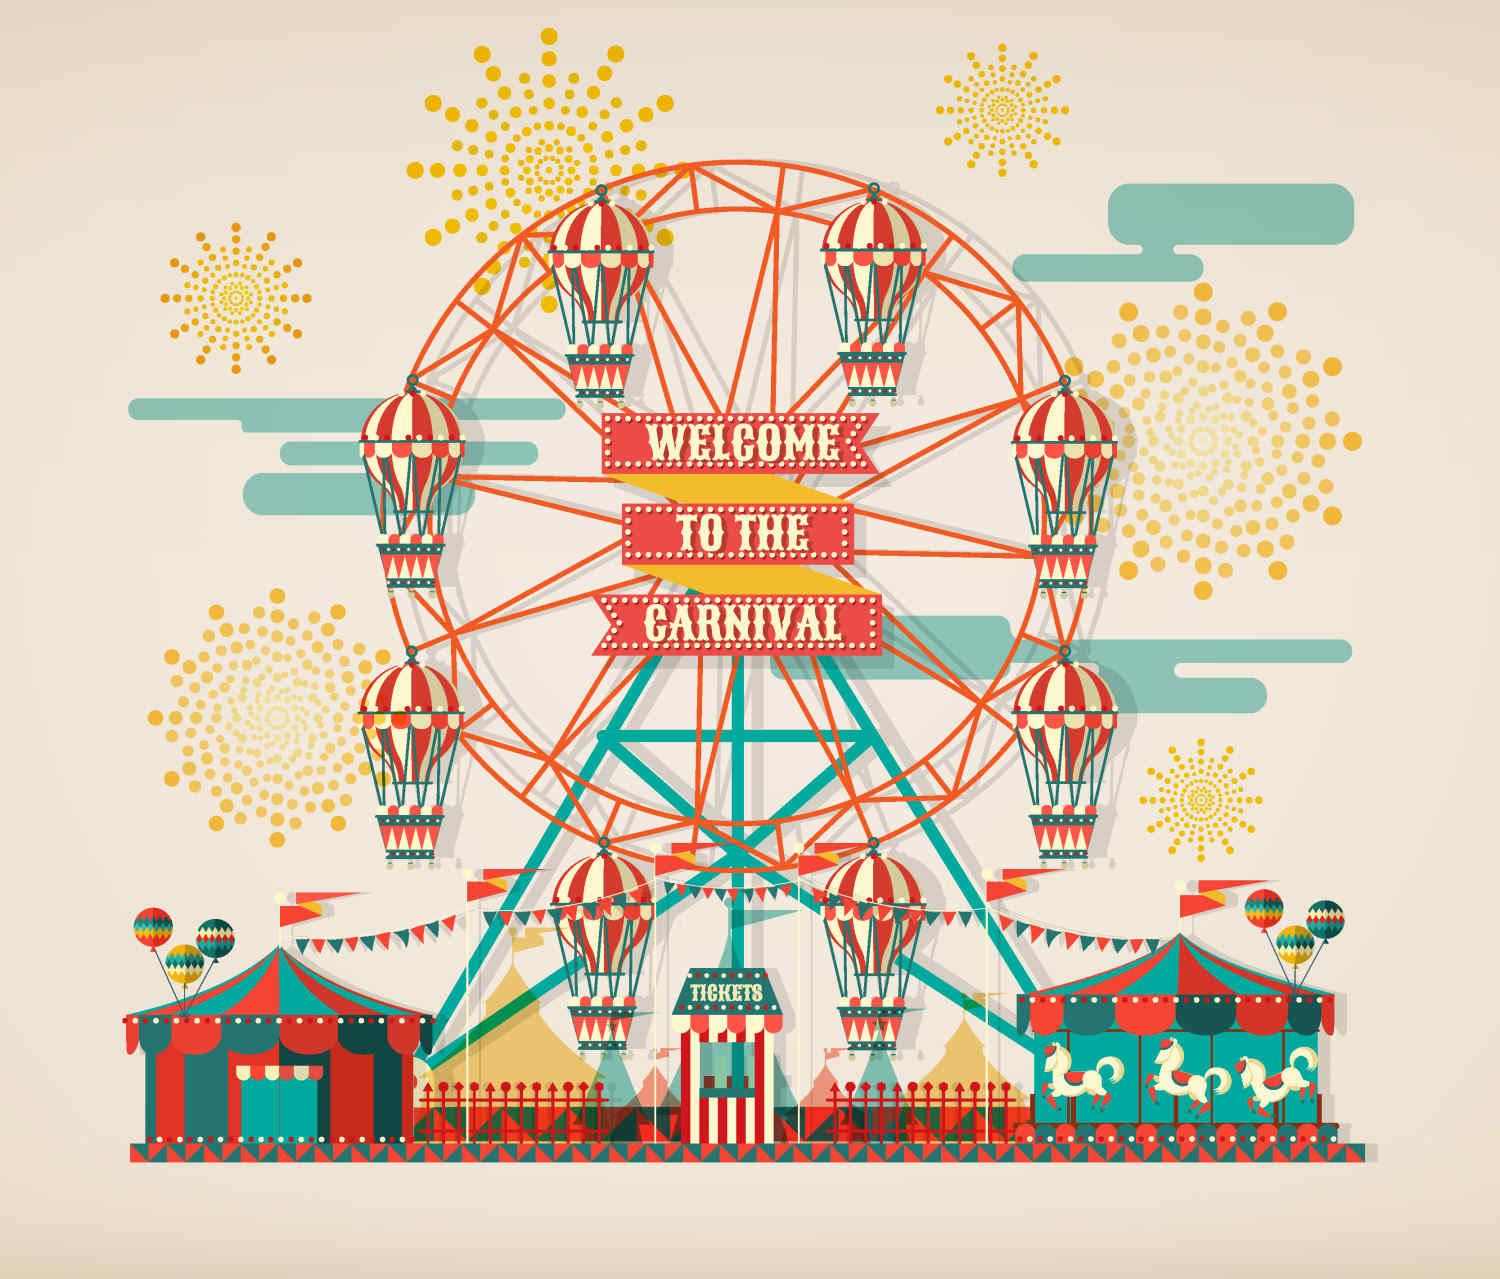 Welcome To The Creepy Hollows Carnival! Get Ready for Wild & Unpredictable Fun